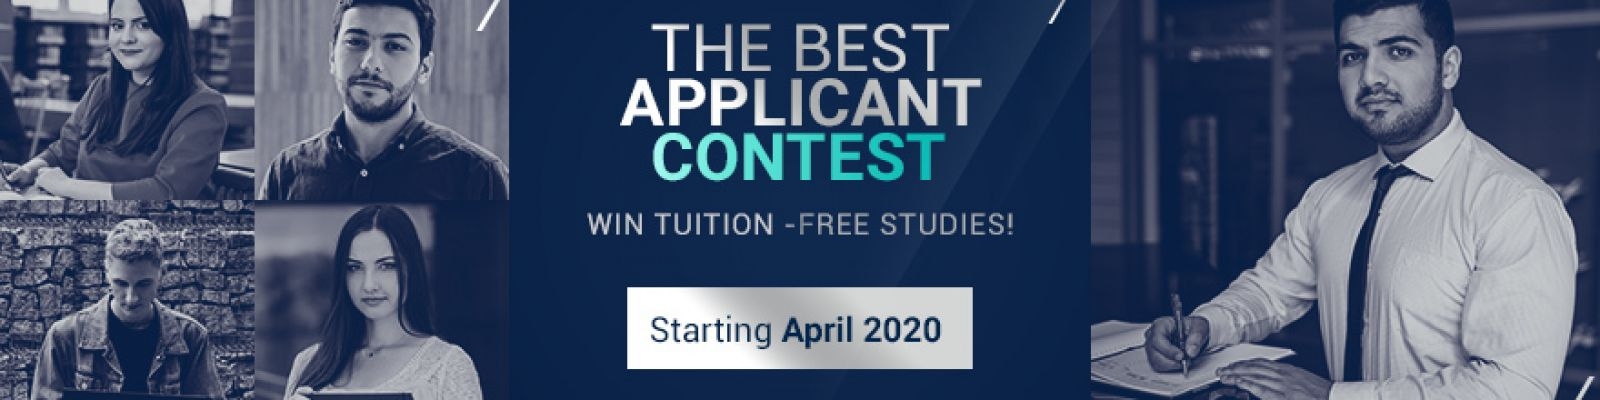 The Best Applicants Contest. Win tuition-free studies!